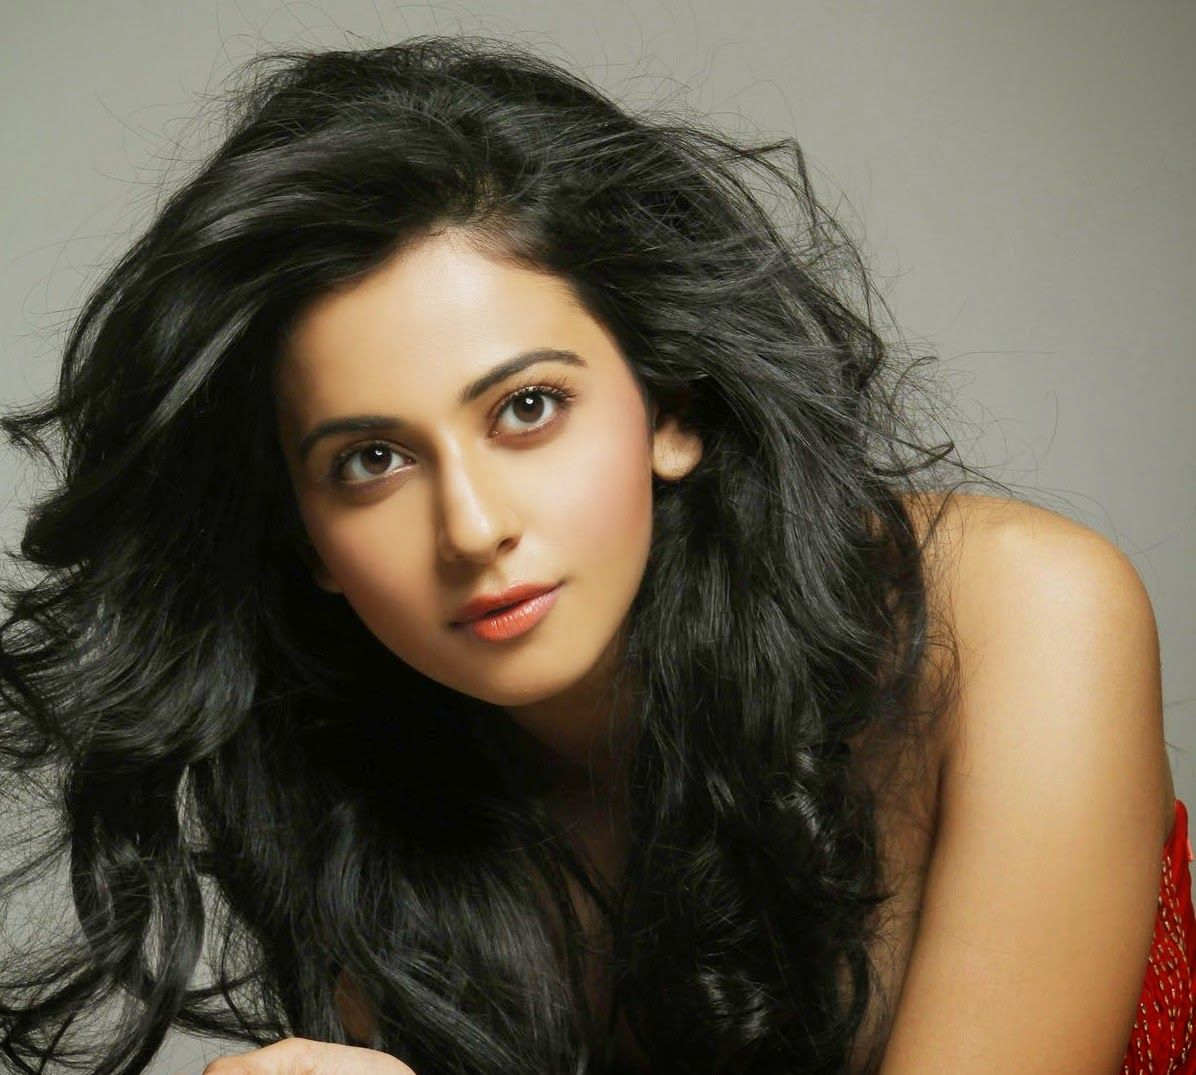 cute rakul preet singh free hd wallpapers for desktop, ipad 1920